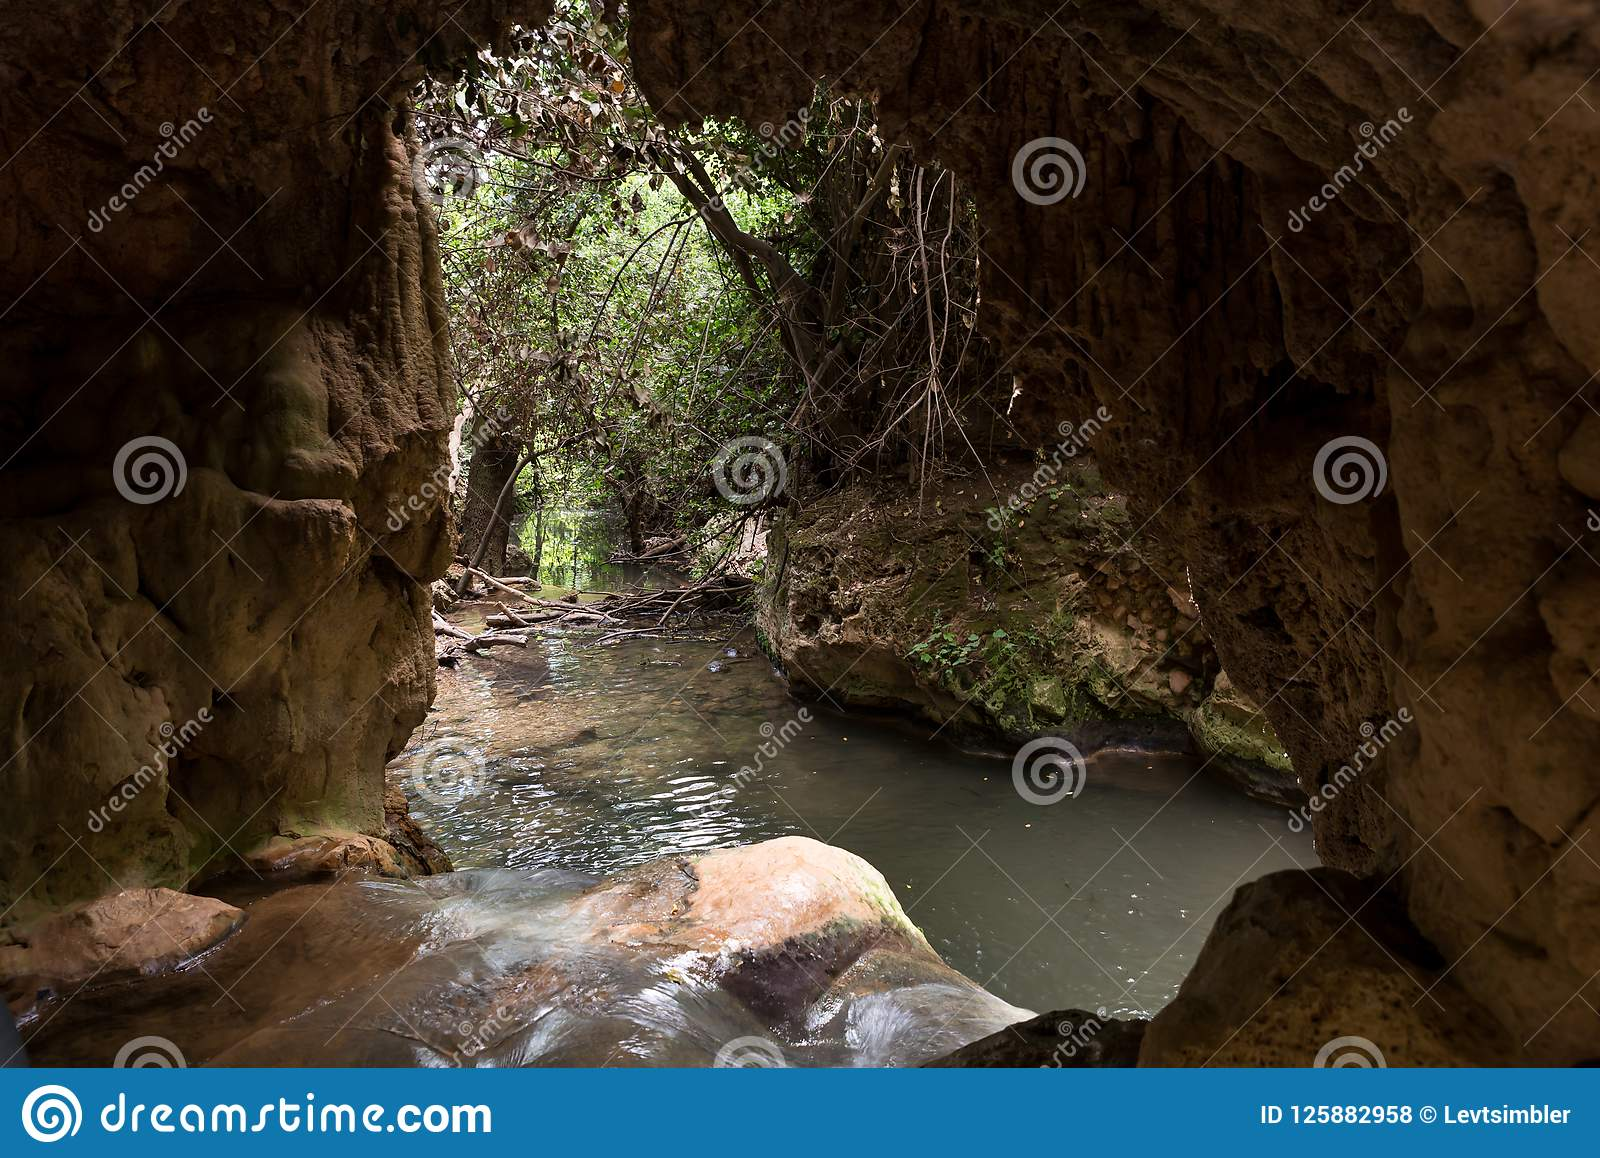 Amud amud stream nature reserve in northern israel stock photo - image of